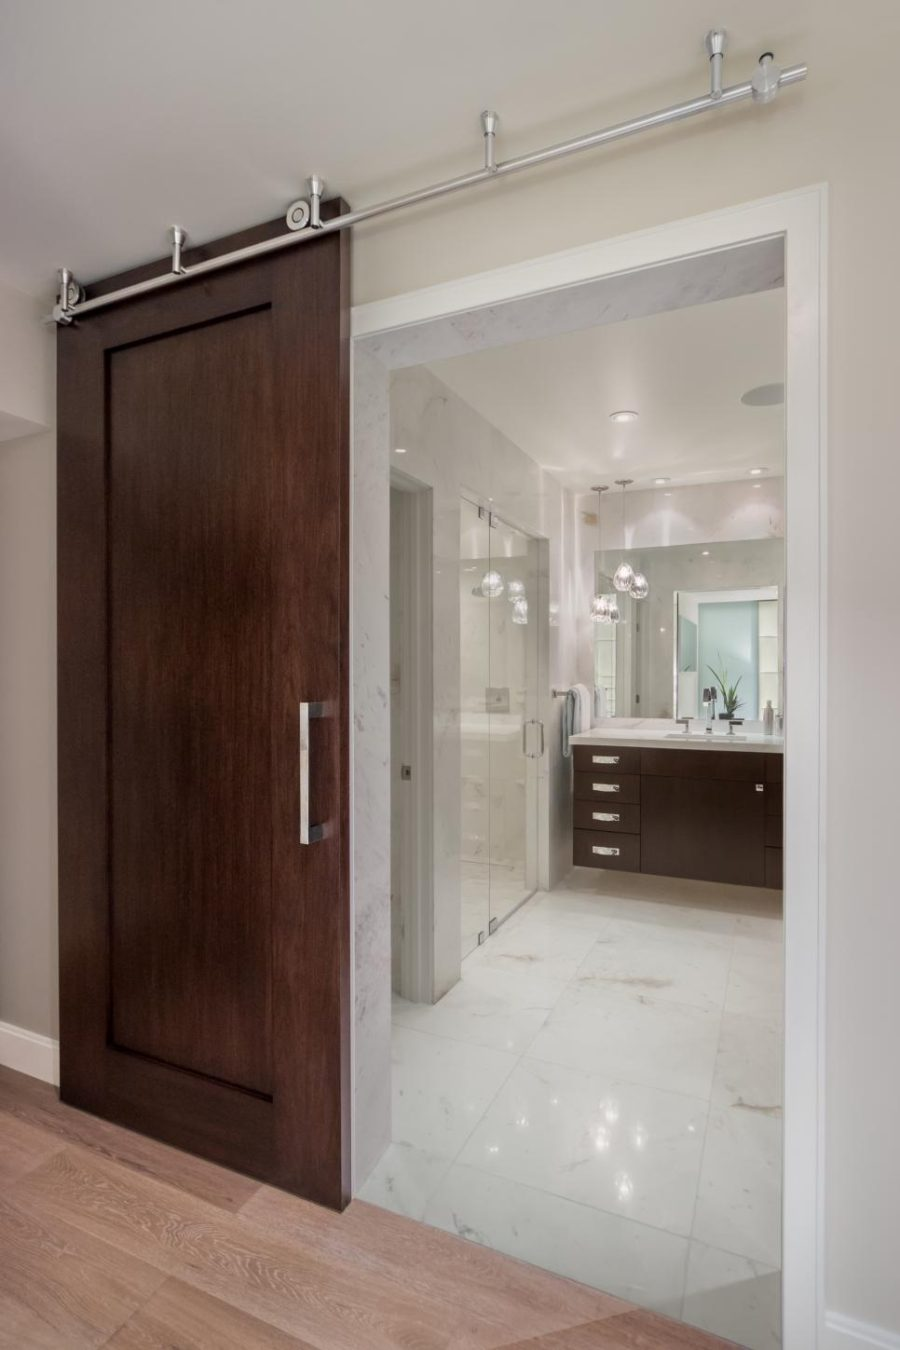 Sophisticated Barn Door By E.Interiors View In Gallery Addison Bruley  Corona Del Mar Remodel